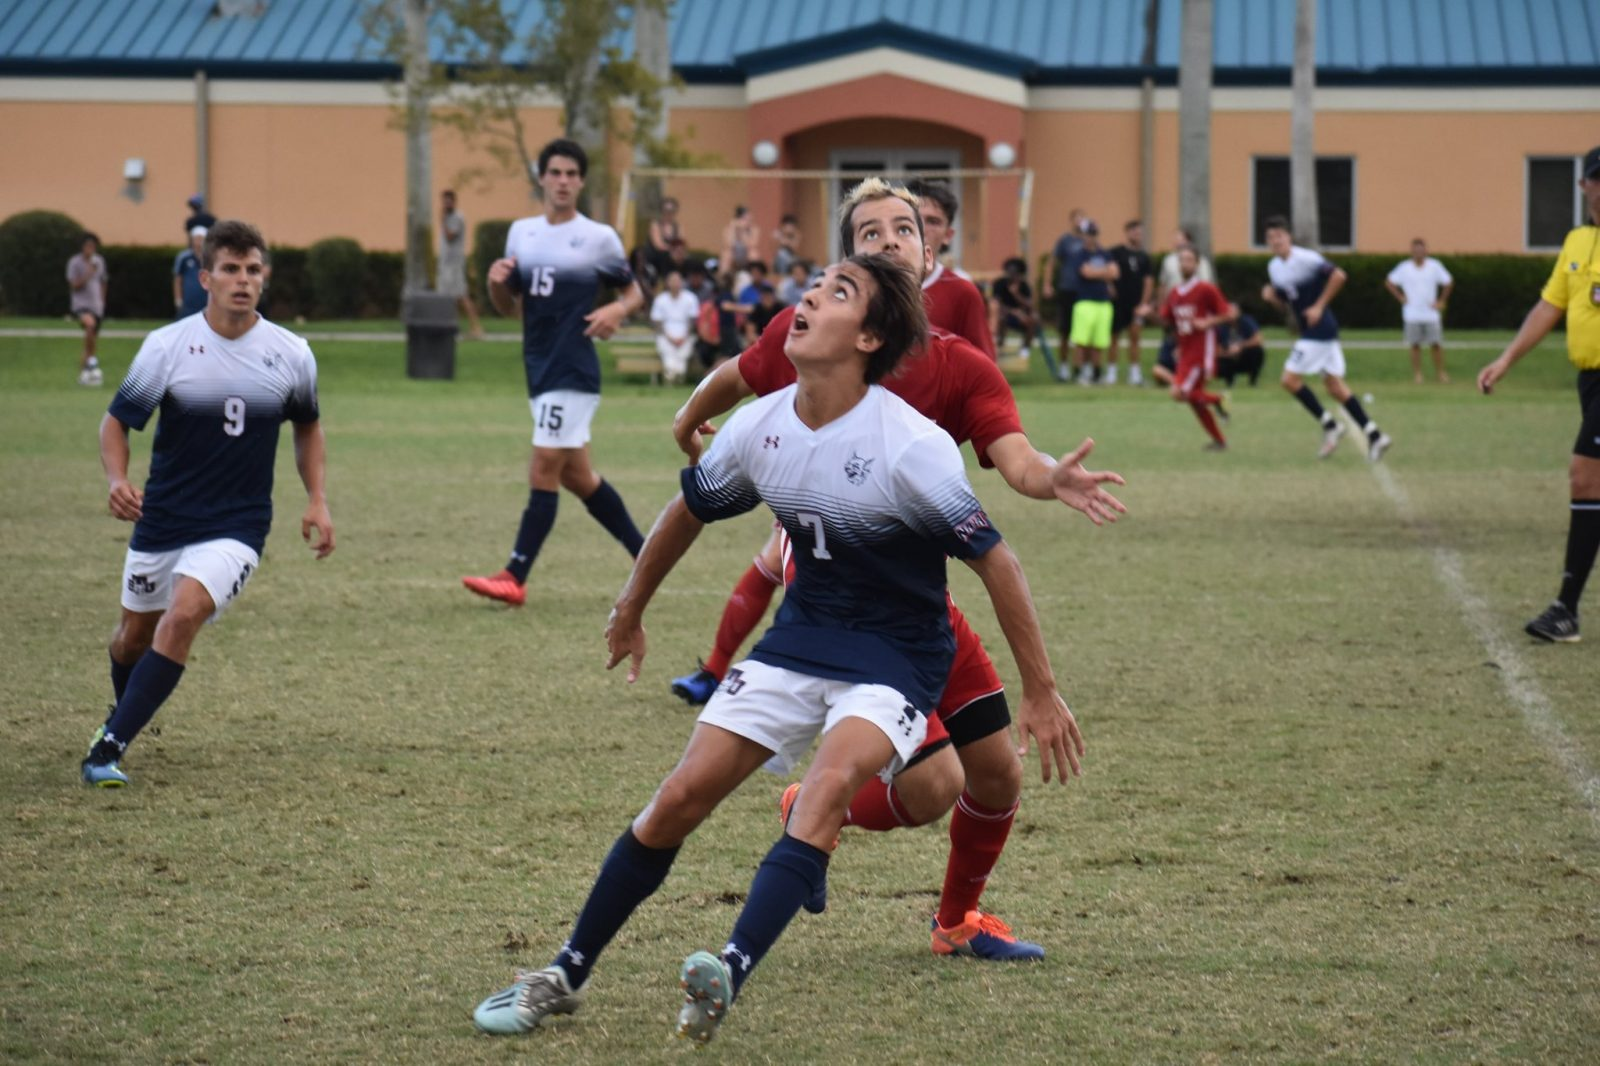 Florida National University player fighting for the ball during the soccer game